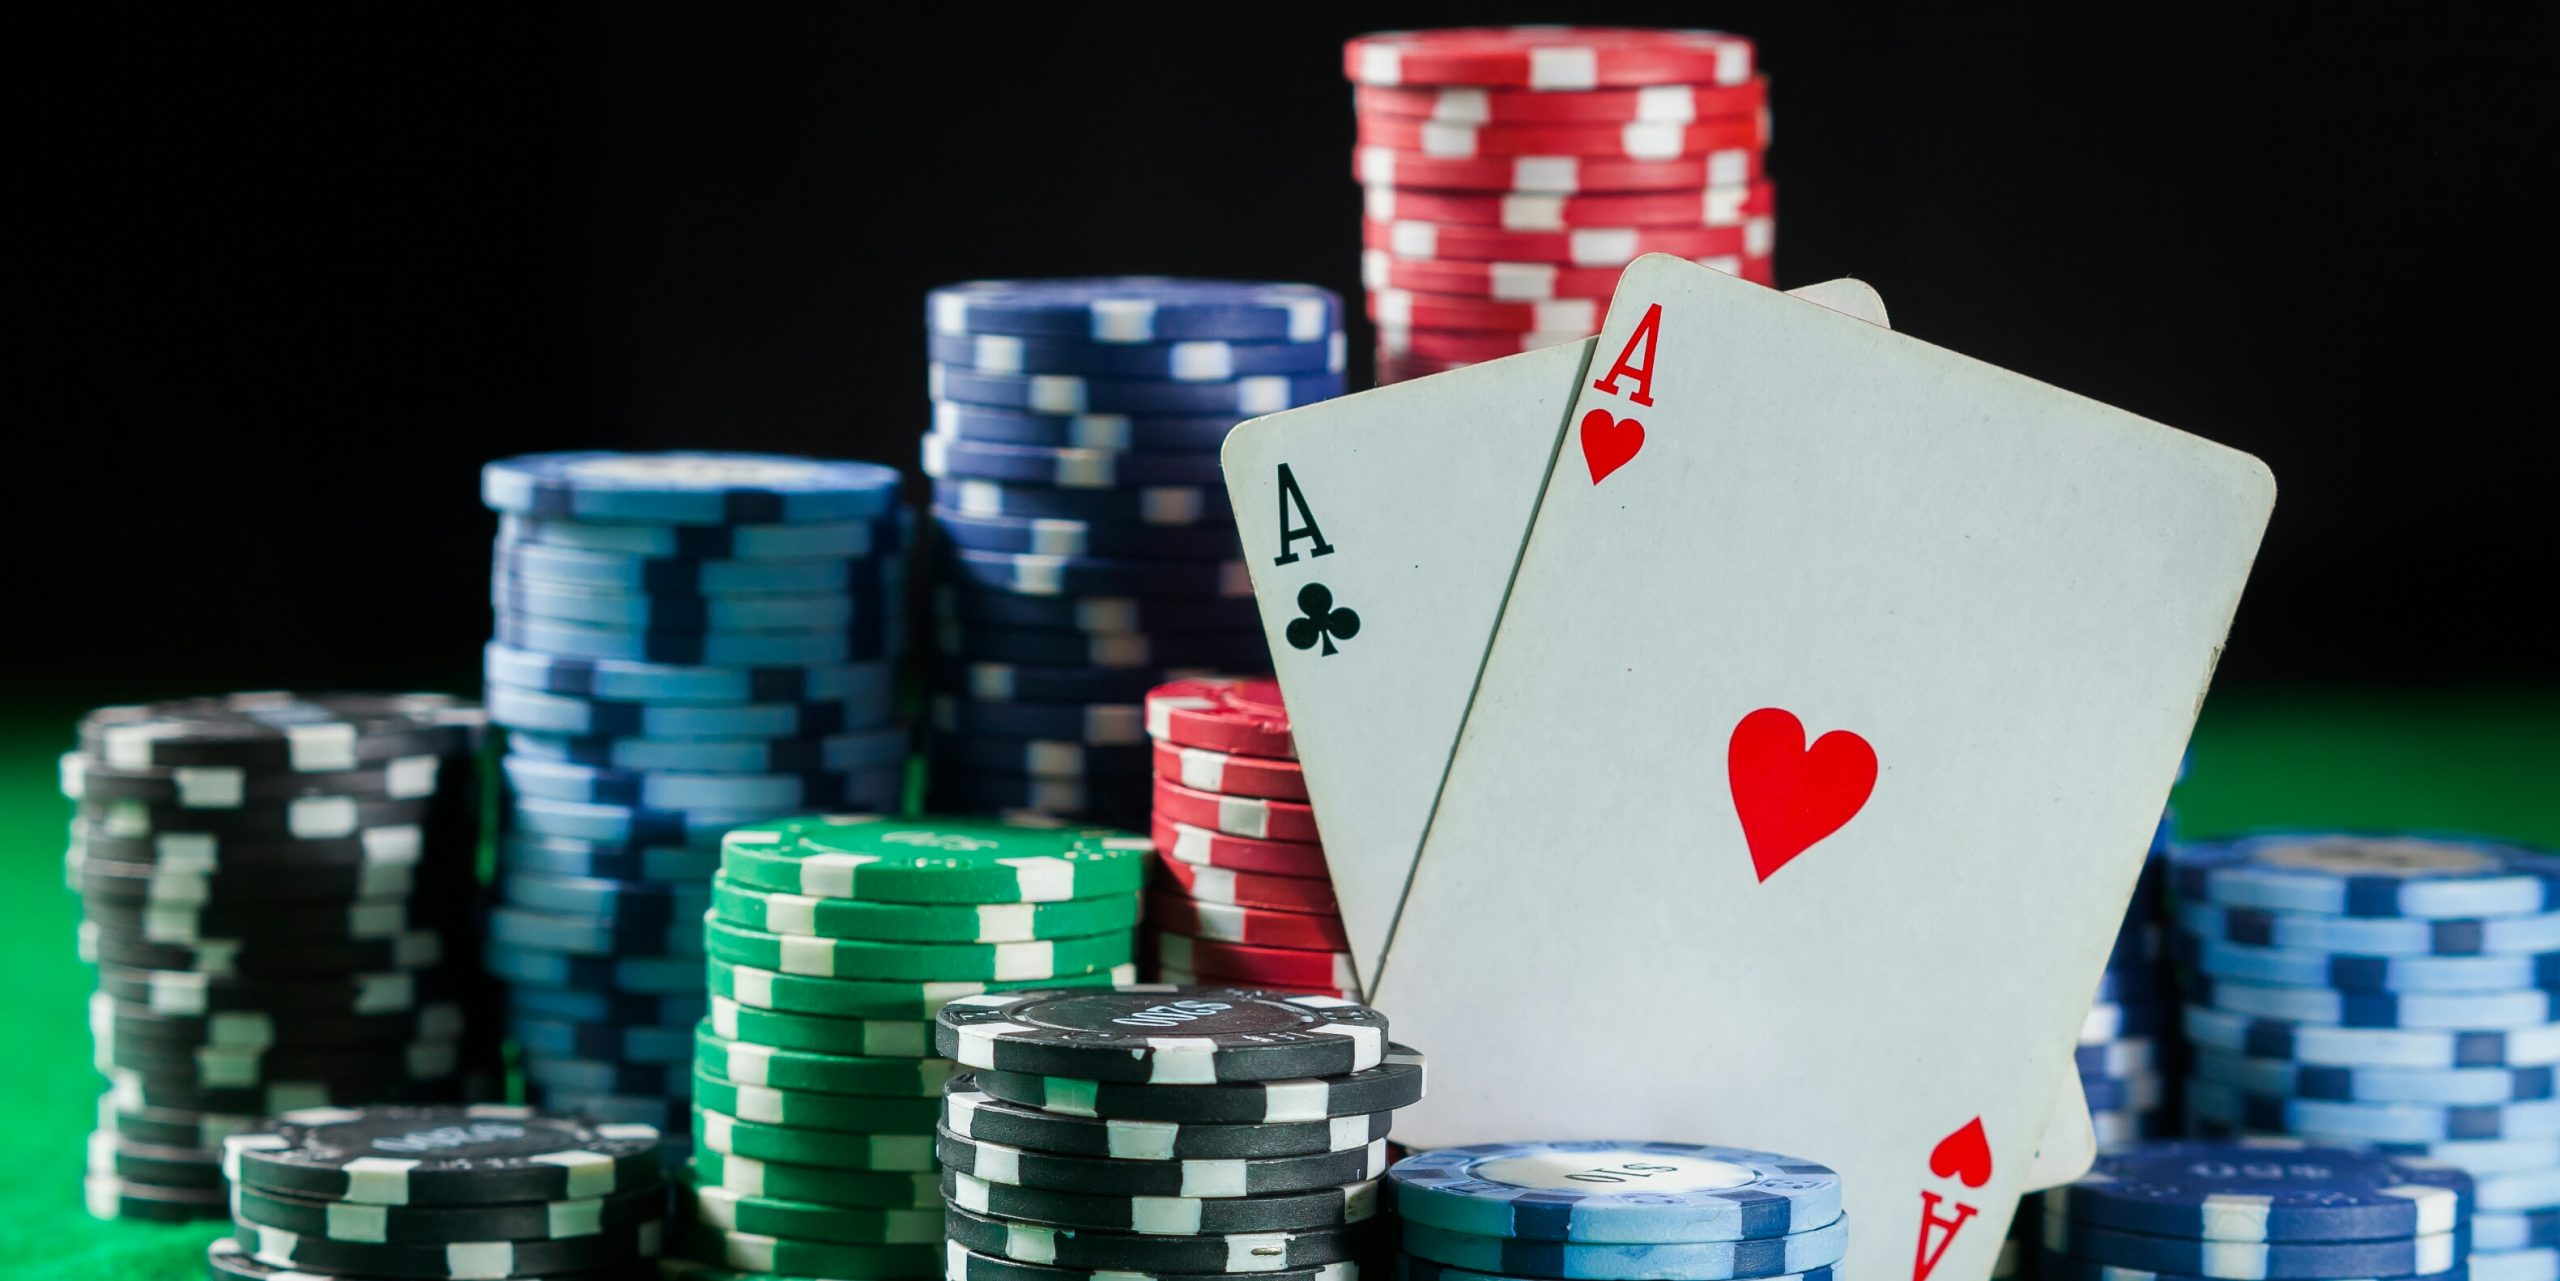 An online site for casino games